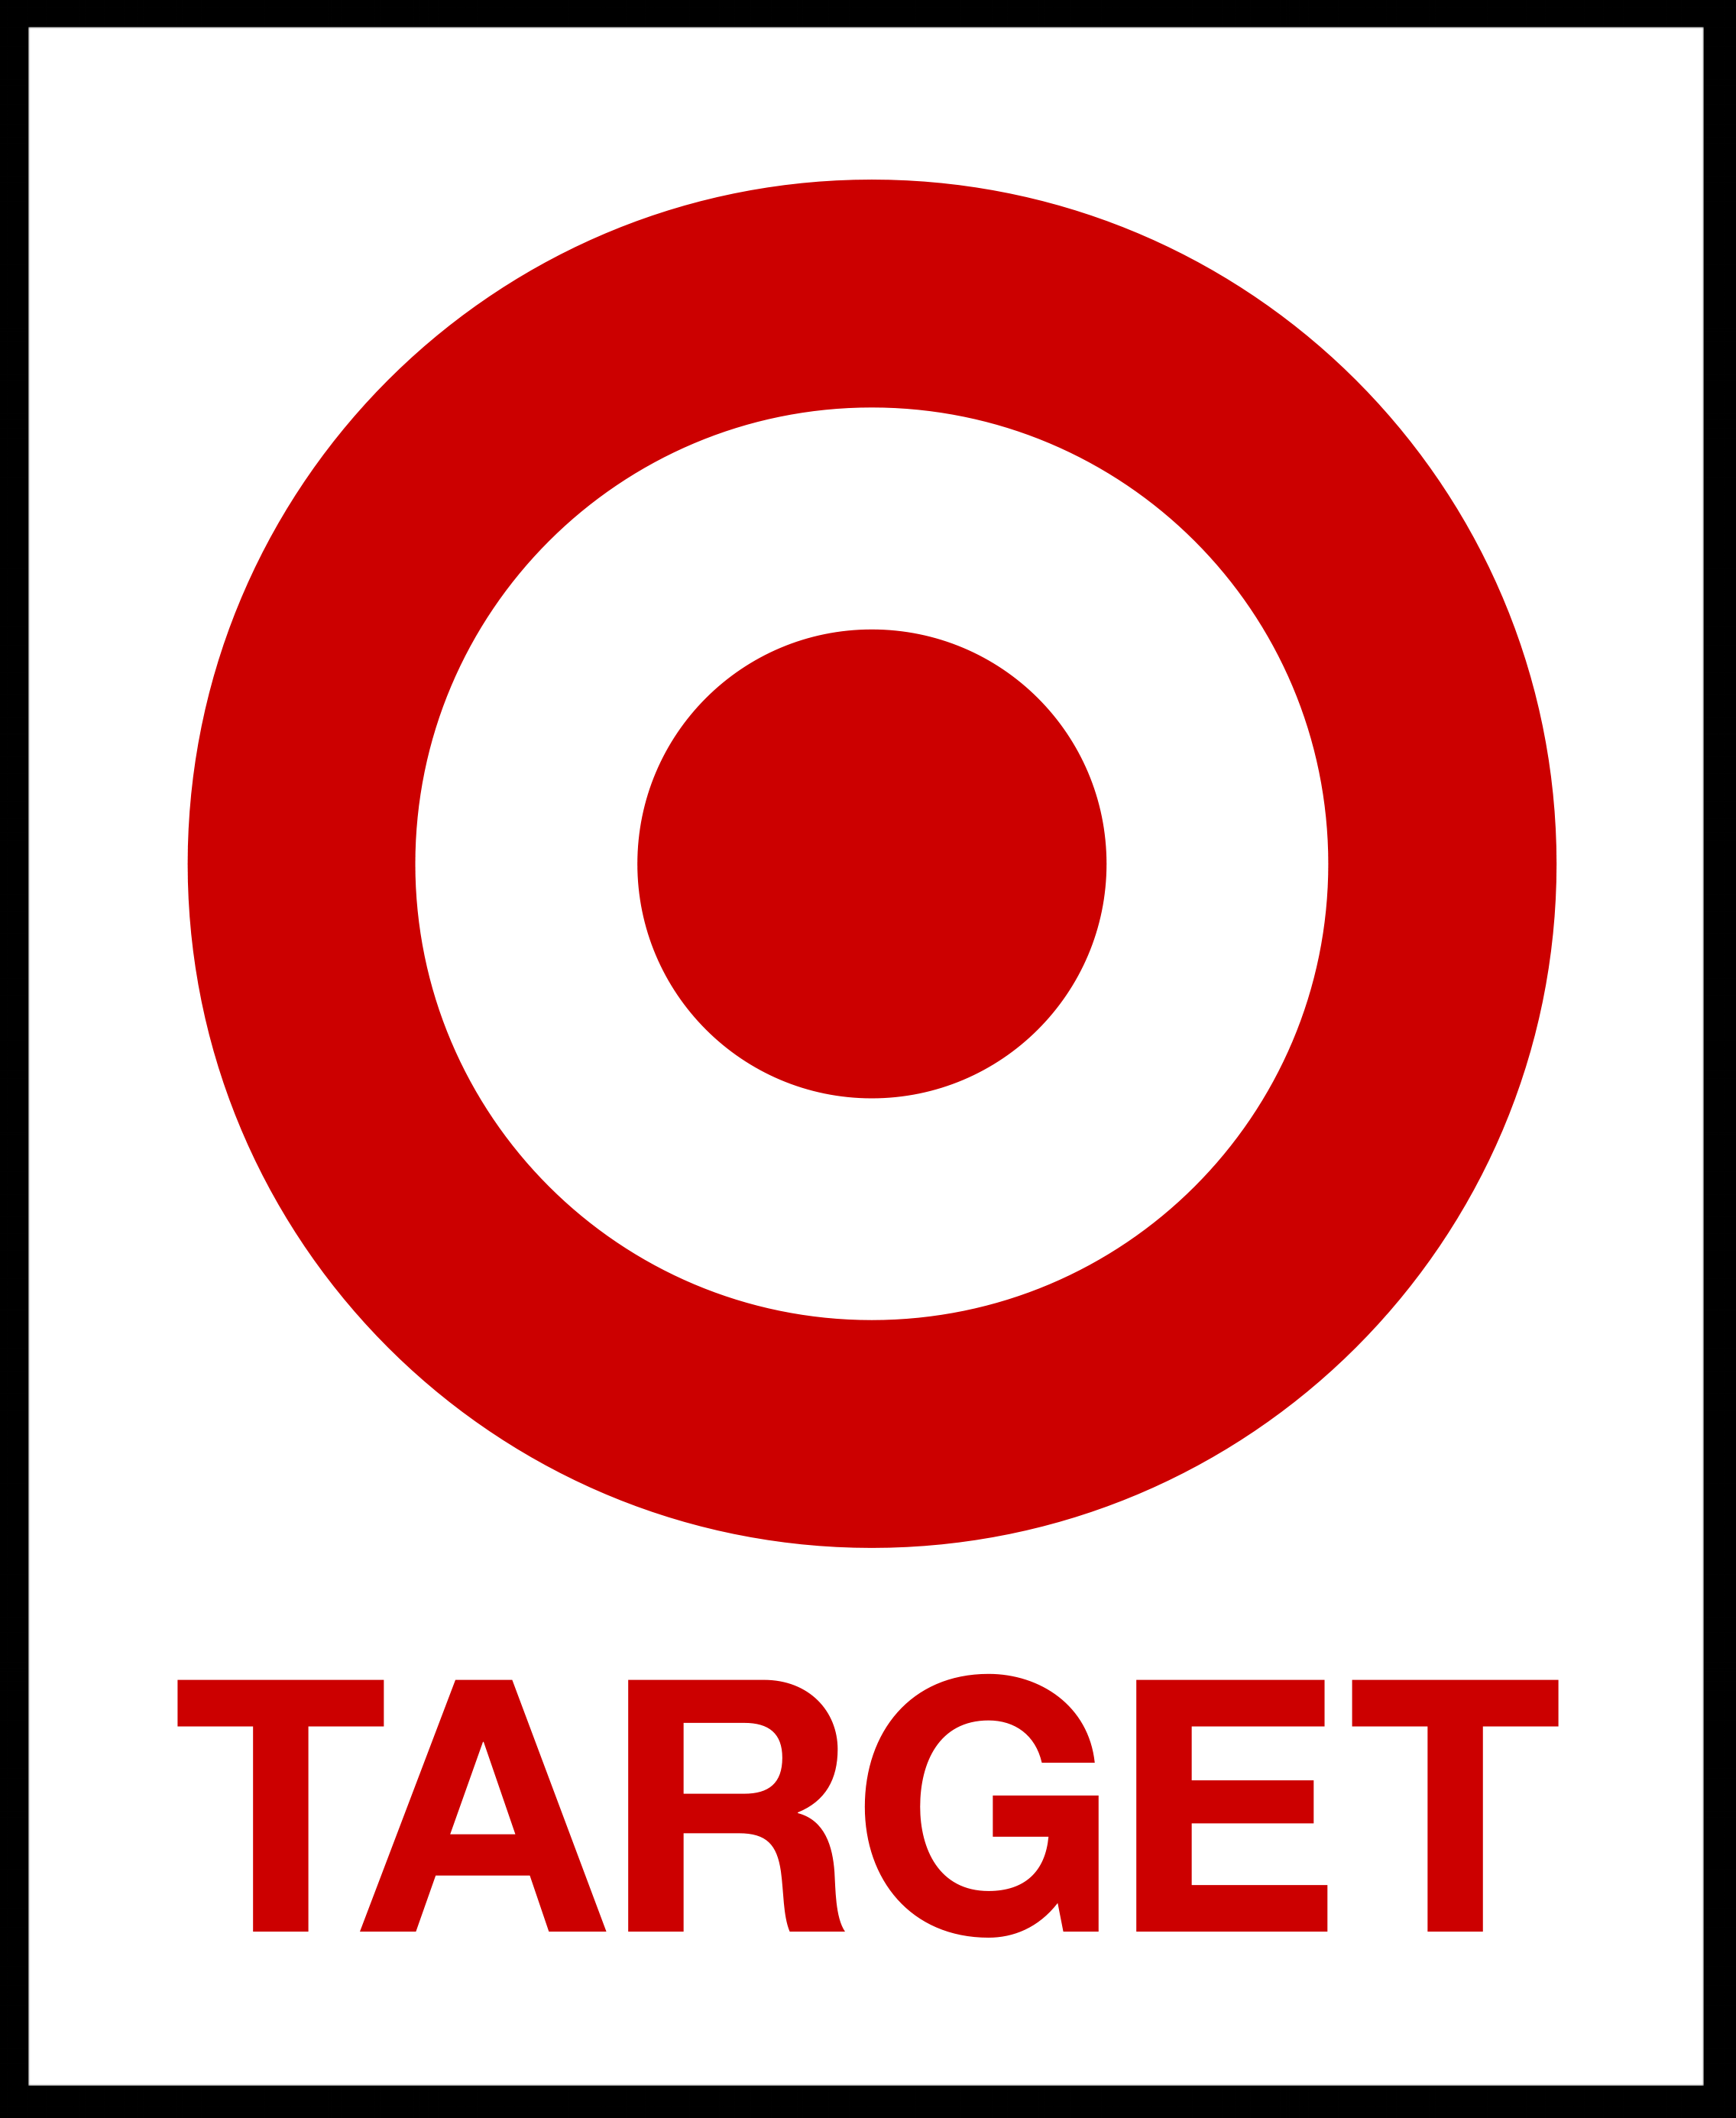 Target-logo-and-wordmark.png